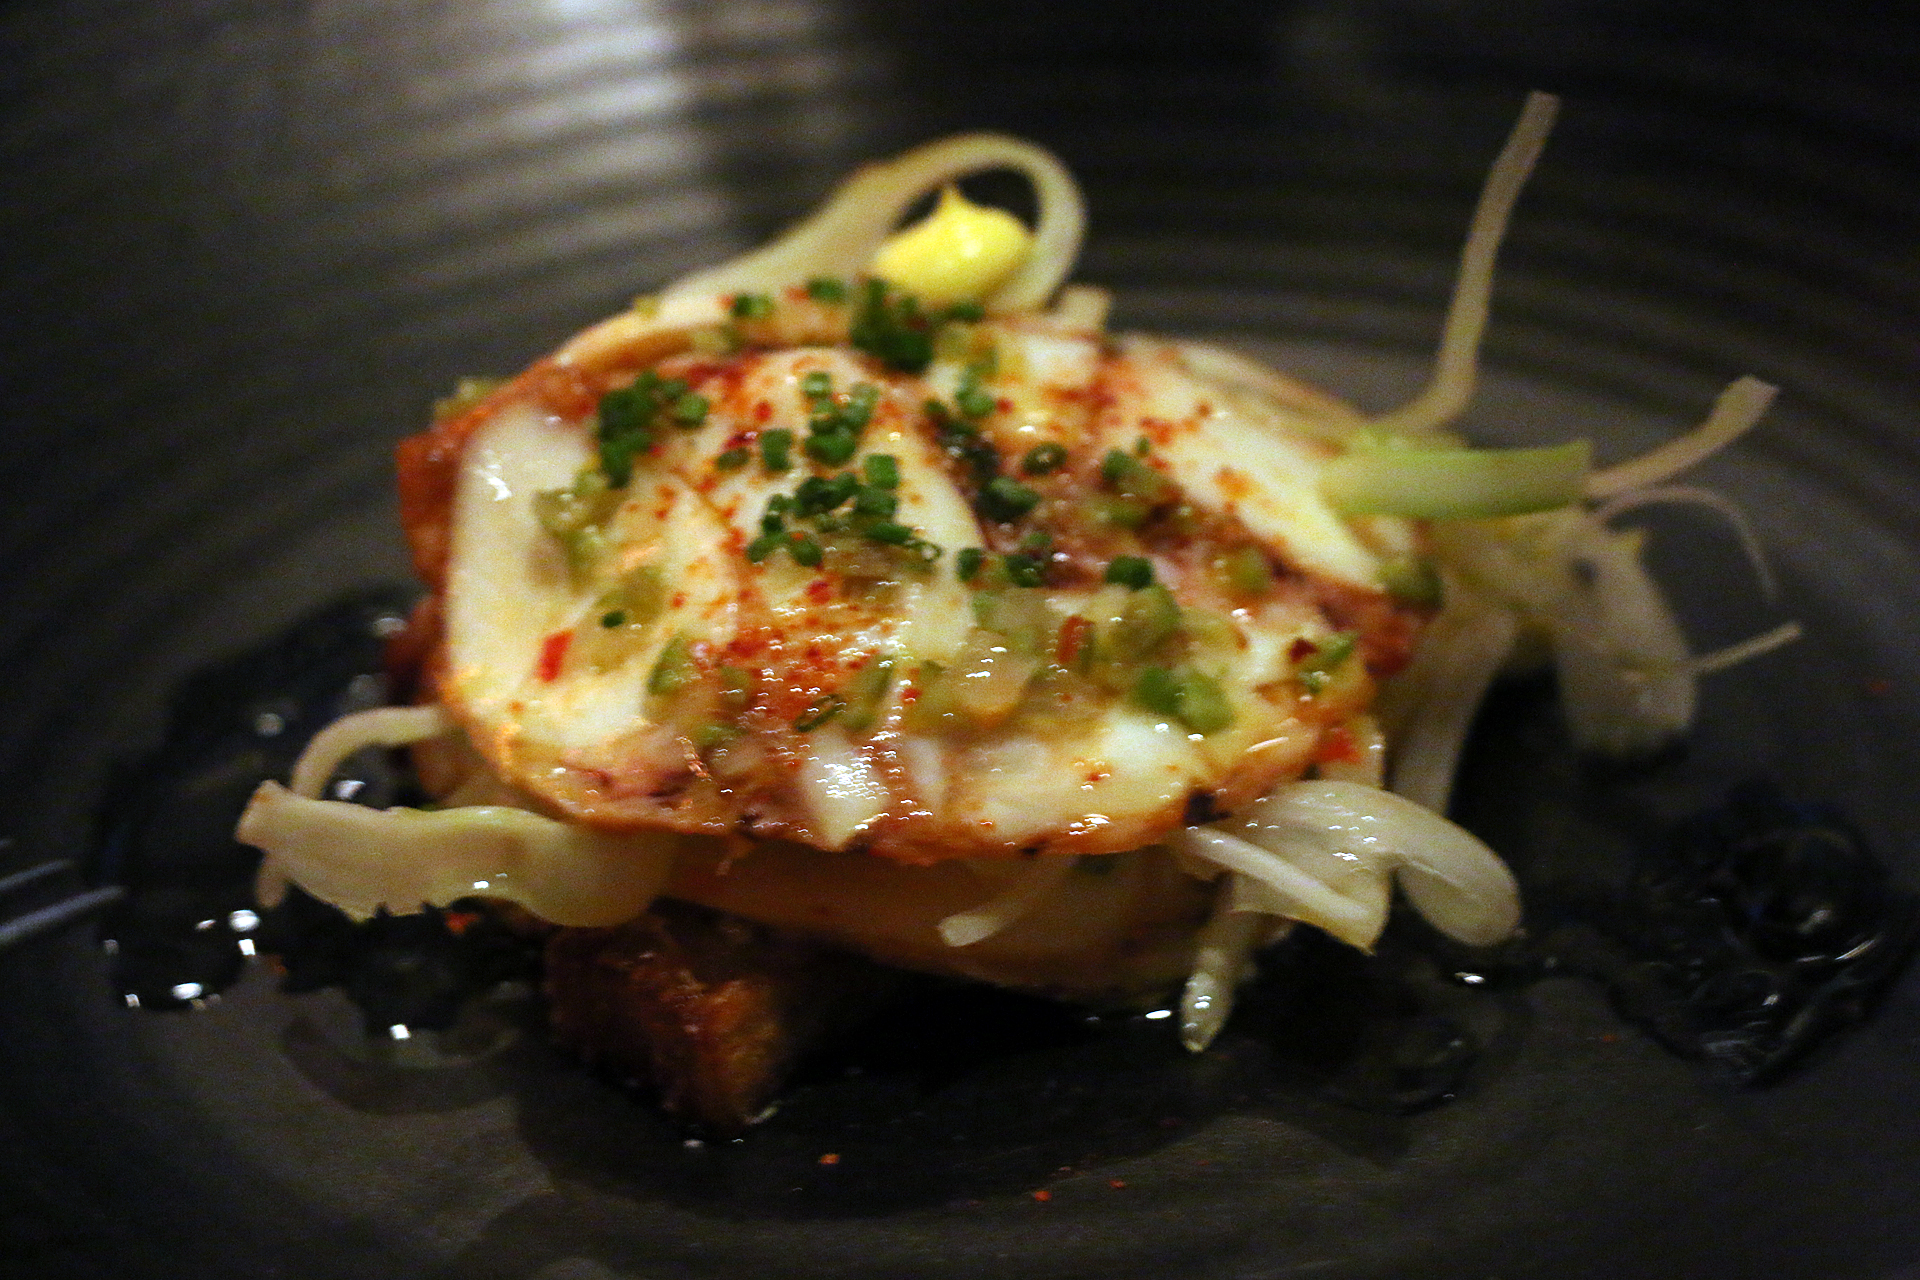 Octopus mille-feuille with pommes Anna, Castelvetrano olives and saffron aioli.